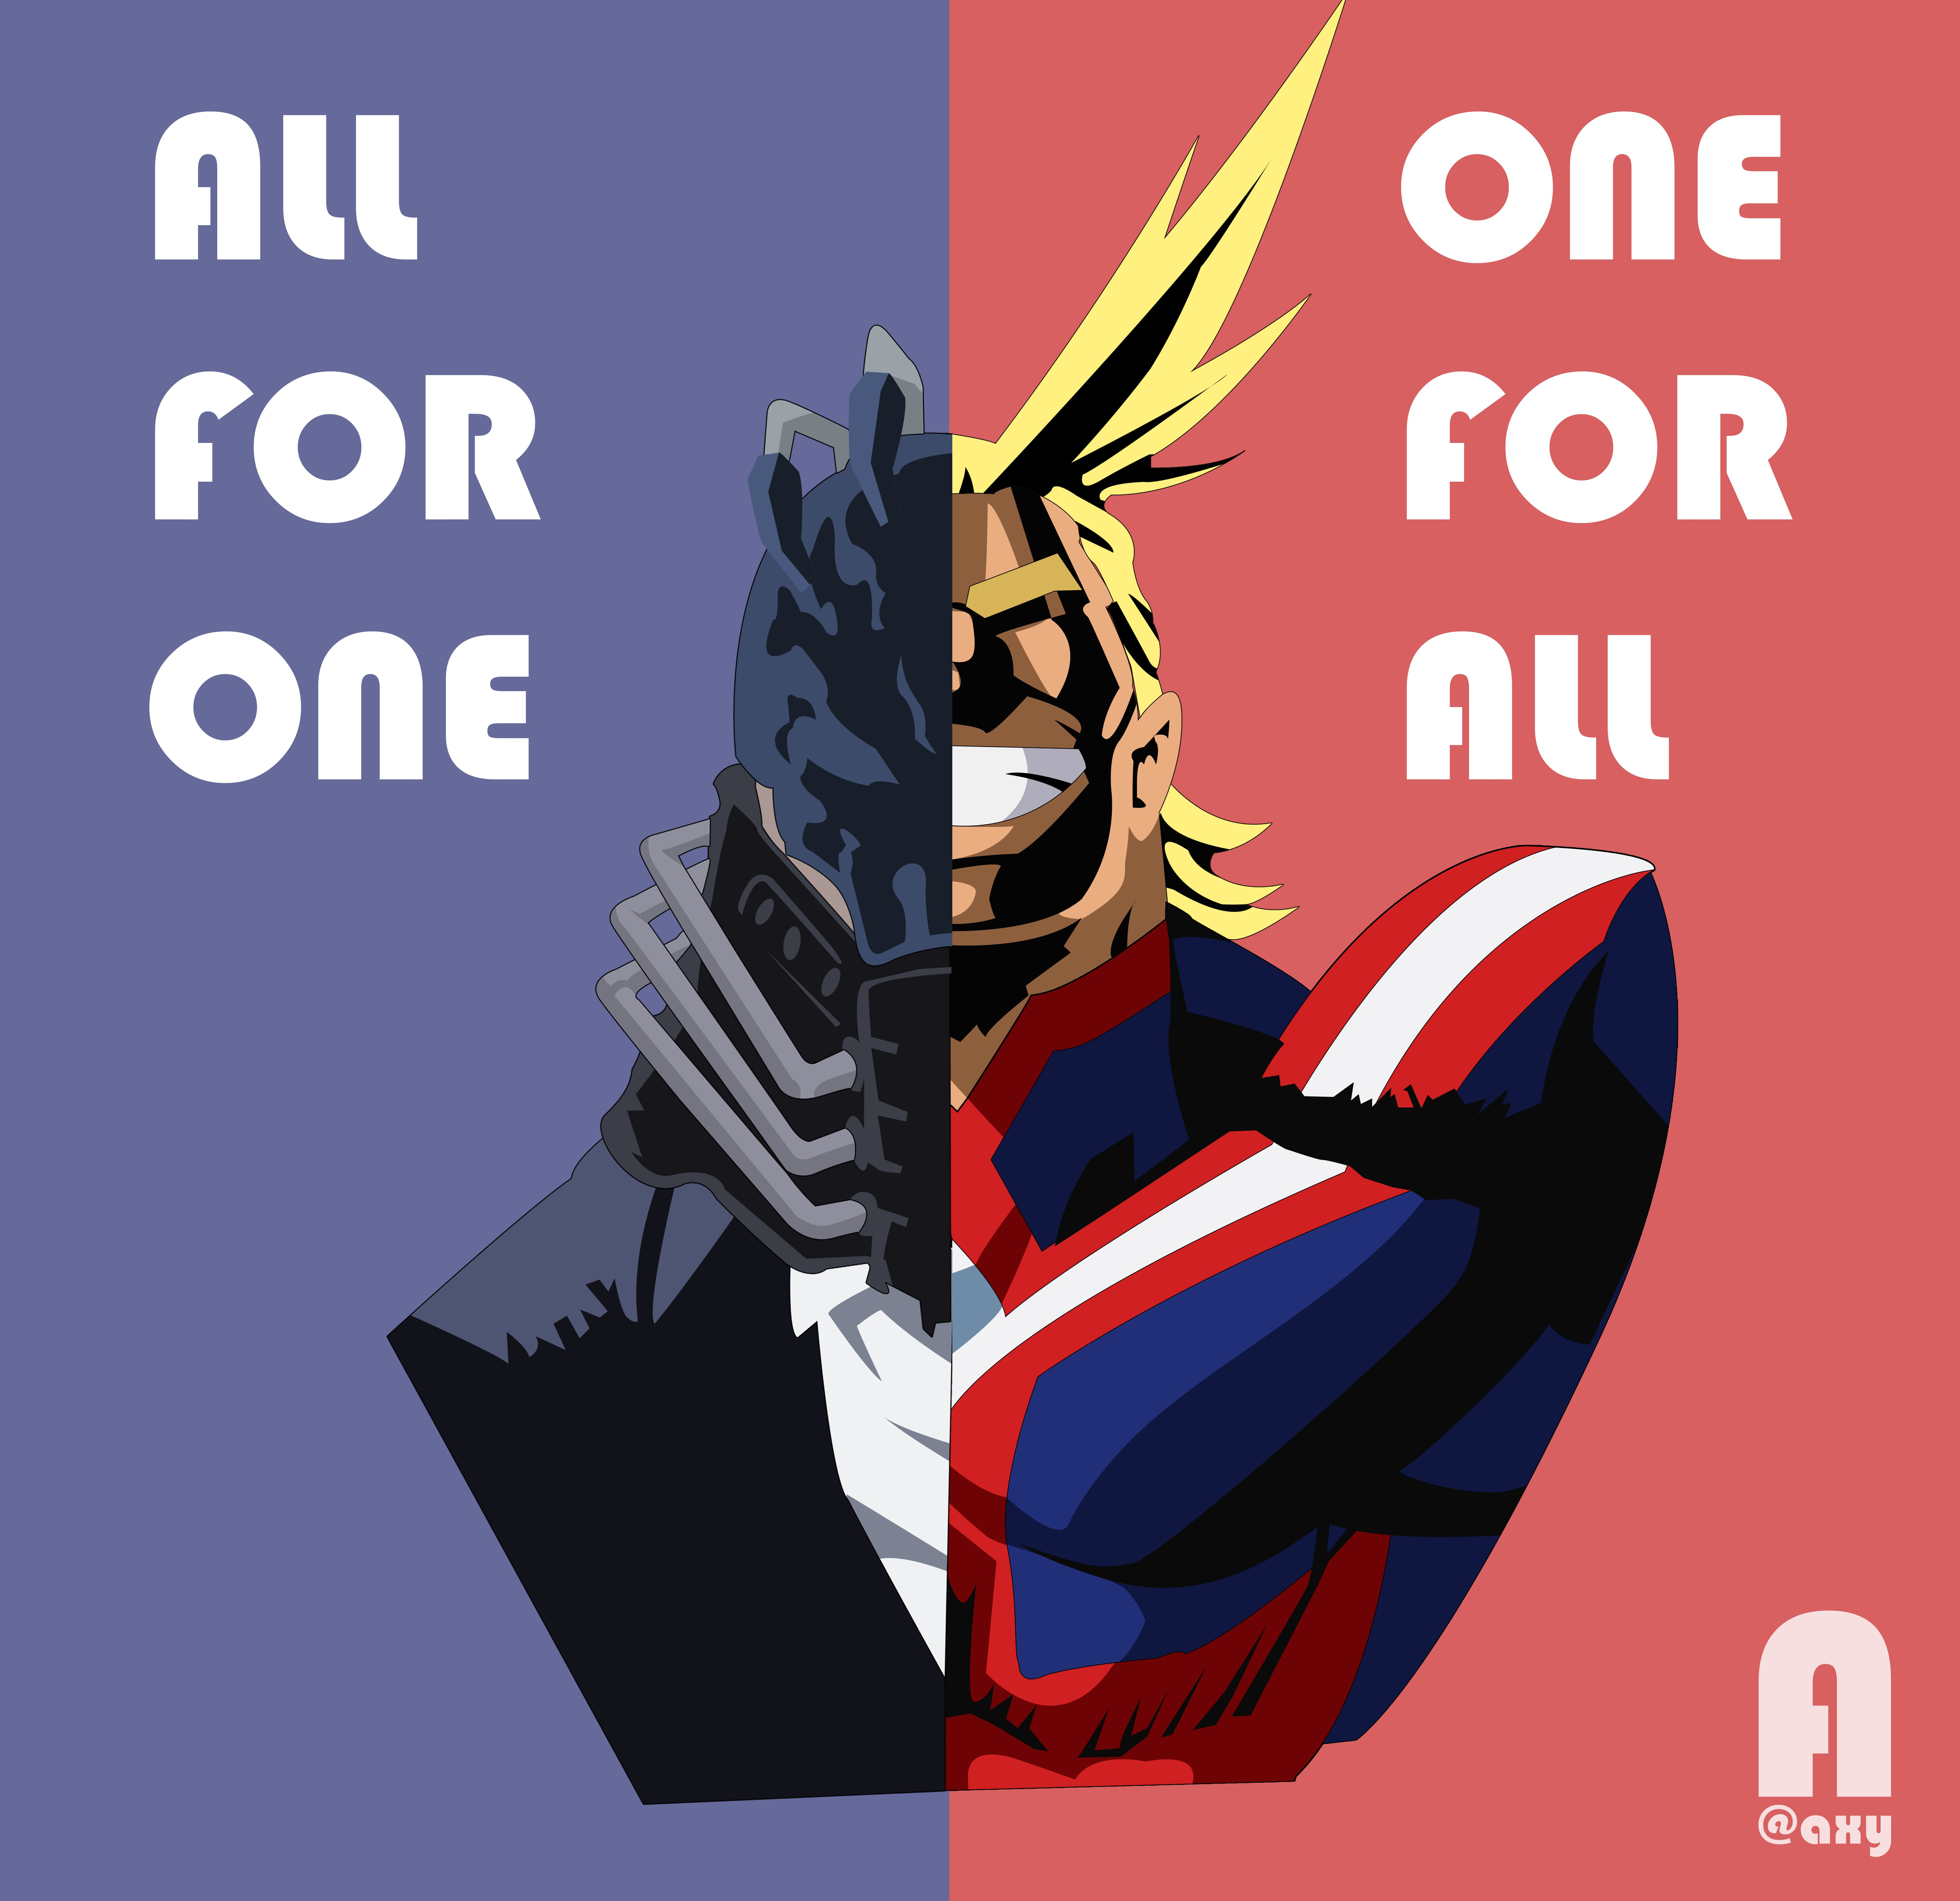 Boku No Hero Academia One For All Vs All For One I Ve Been Waiting For This Epic Fight Art Design Illustra Hero Wallpaper My Hero Boku No Hero Academia